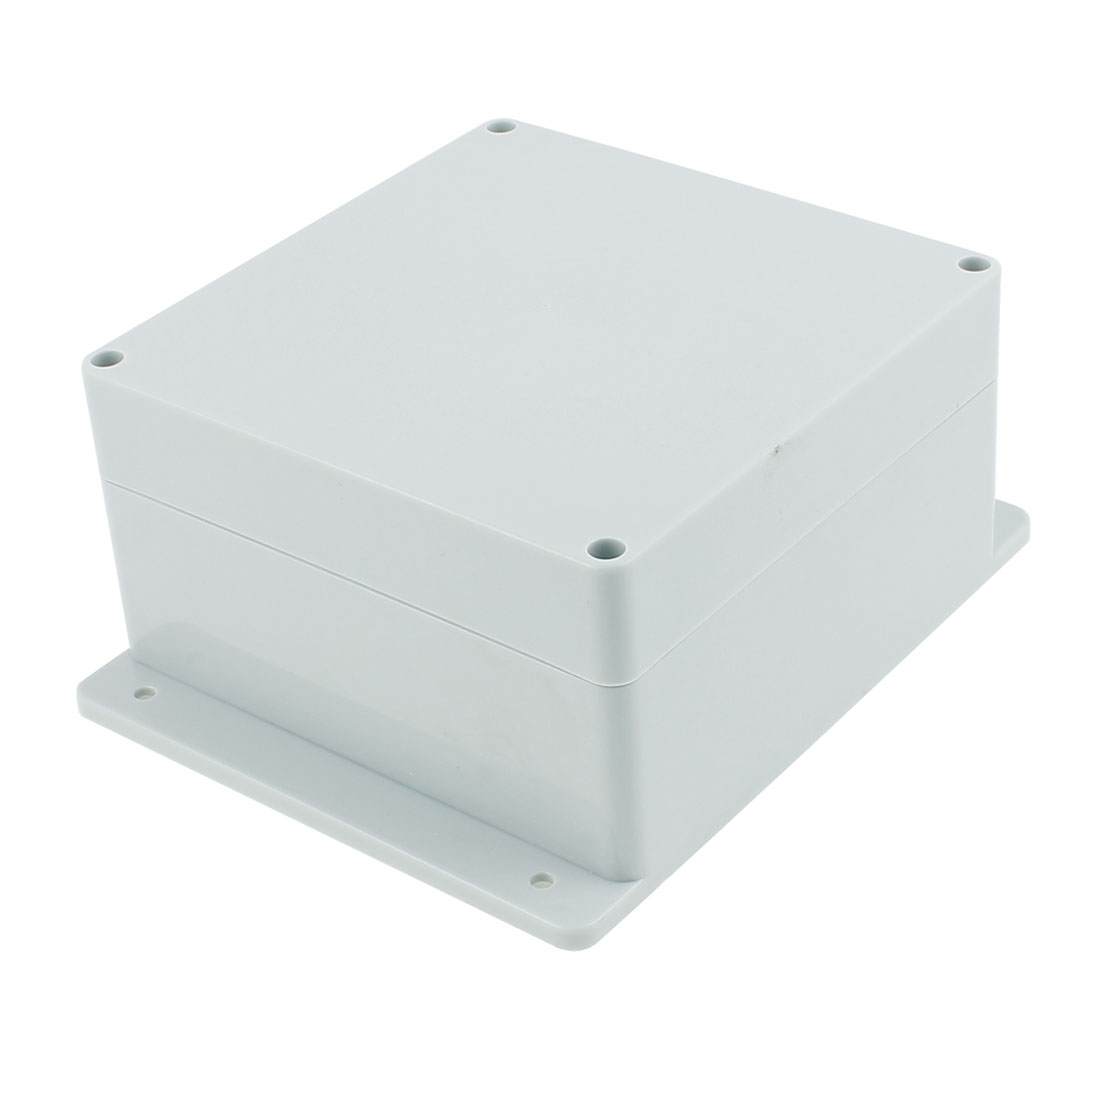 200 x 160 x 90mm Dustproof IP65 Junction Box Terminal Connection Box Enclosure